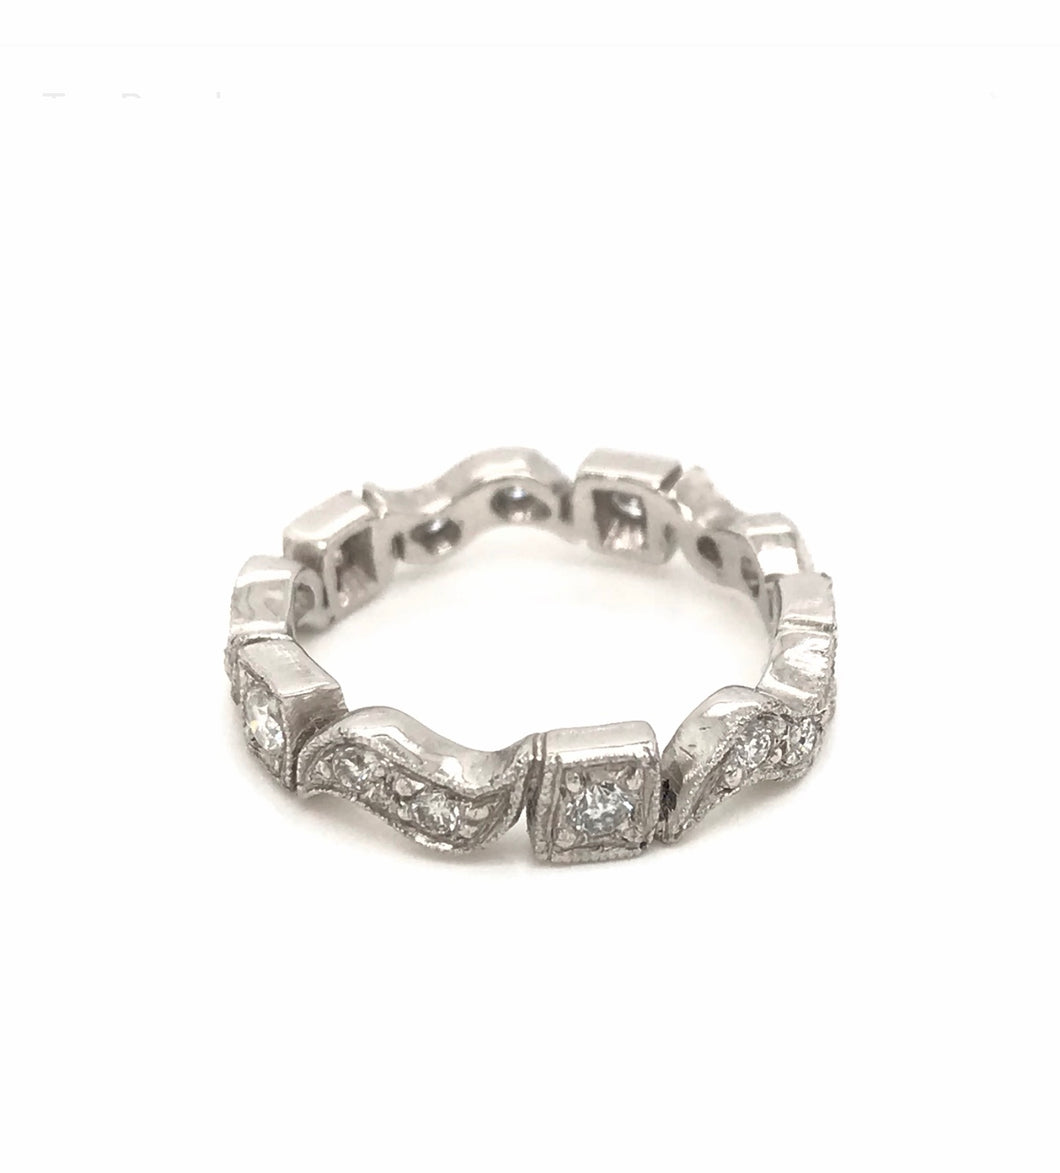 ANTIQUE STYLE DIAMOND PLATINUM BAND